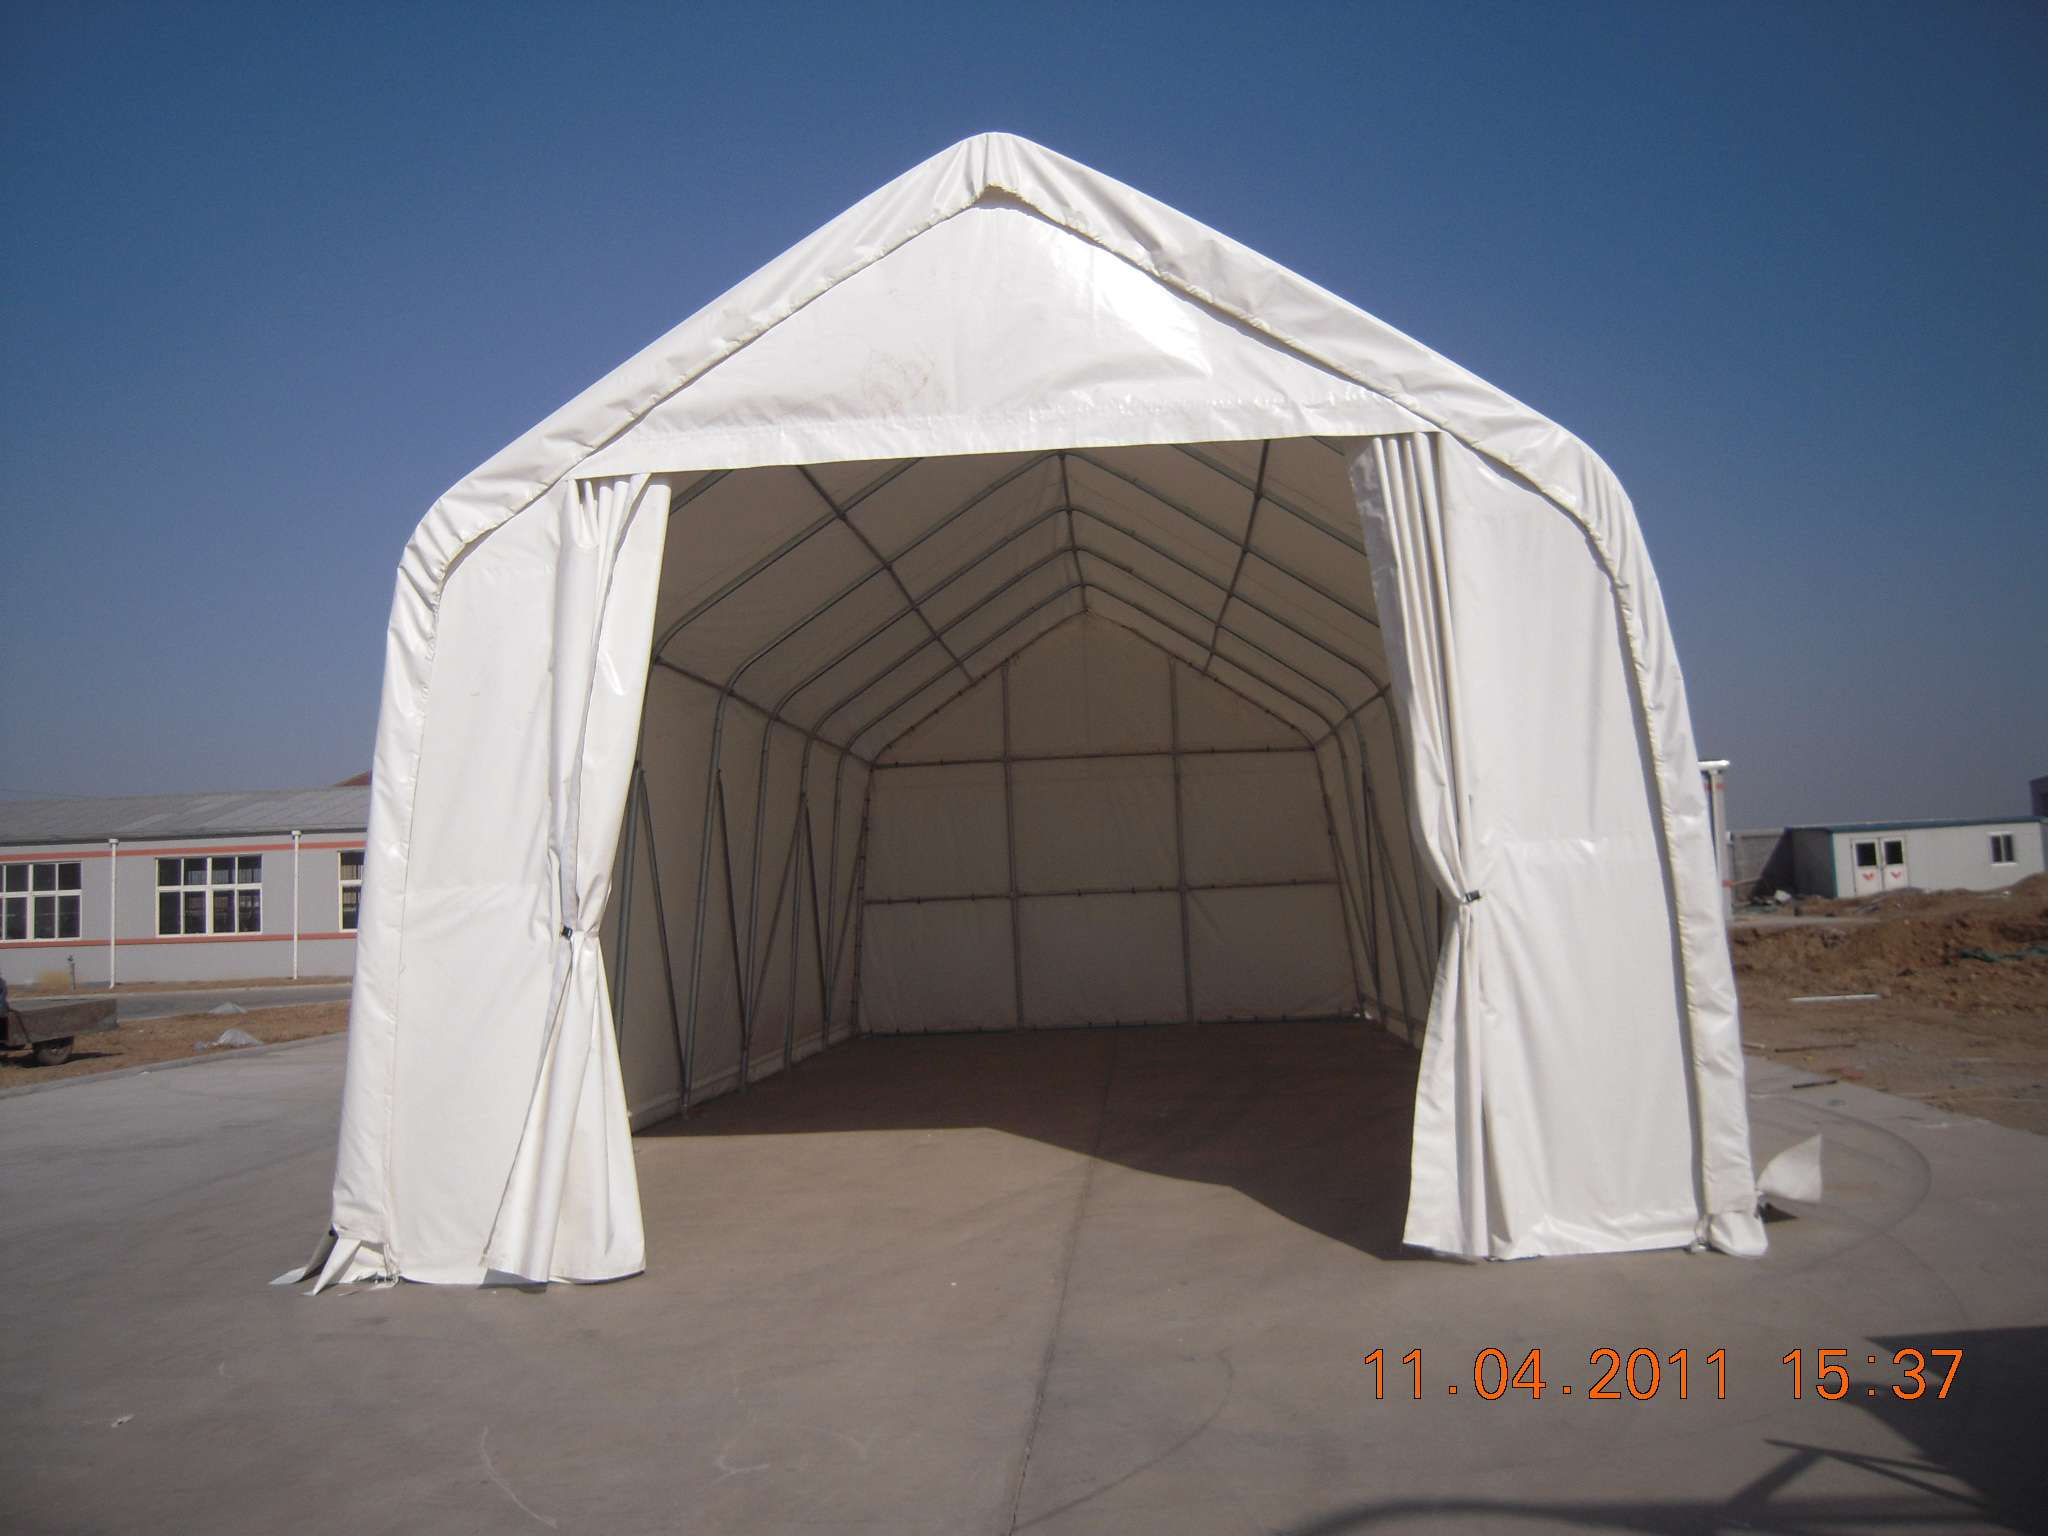 Portable Boat Shelters : Shelters portable garages tent sheds outdoor storage large